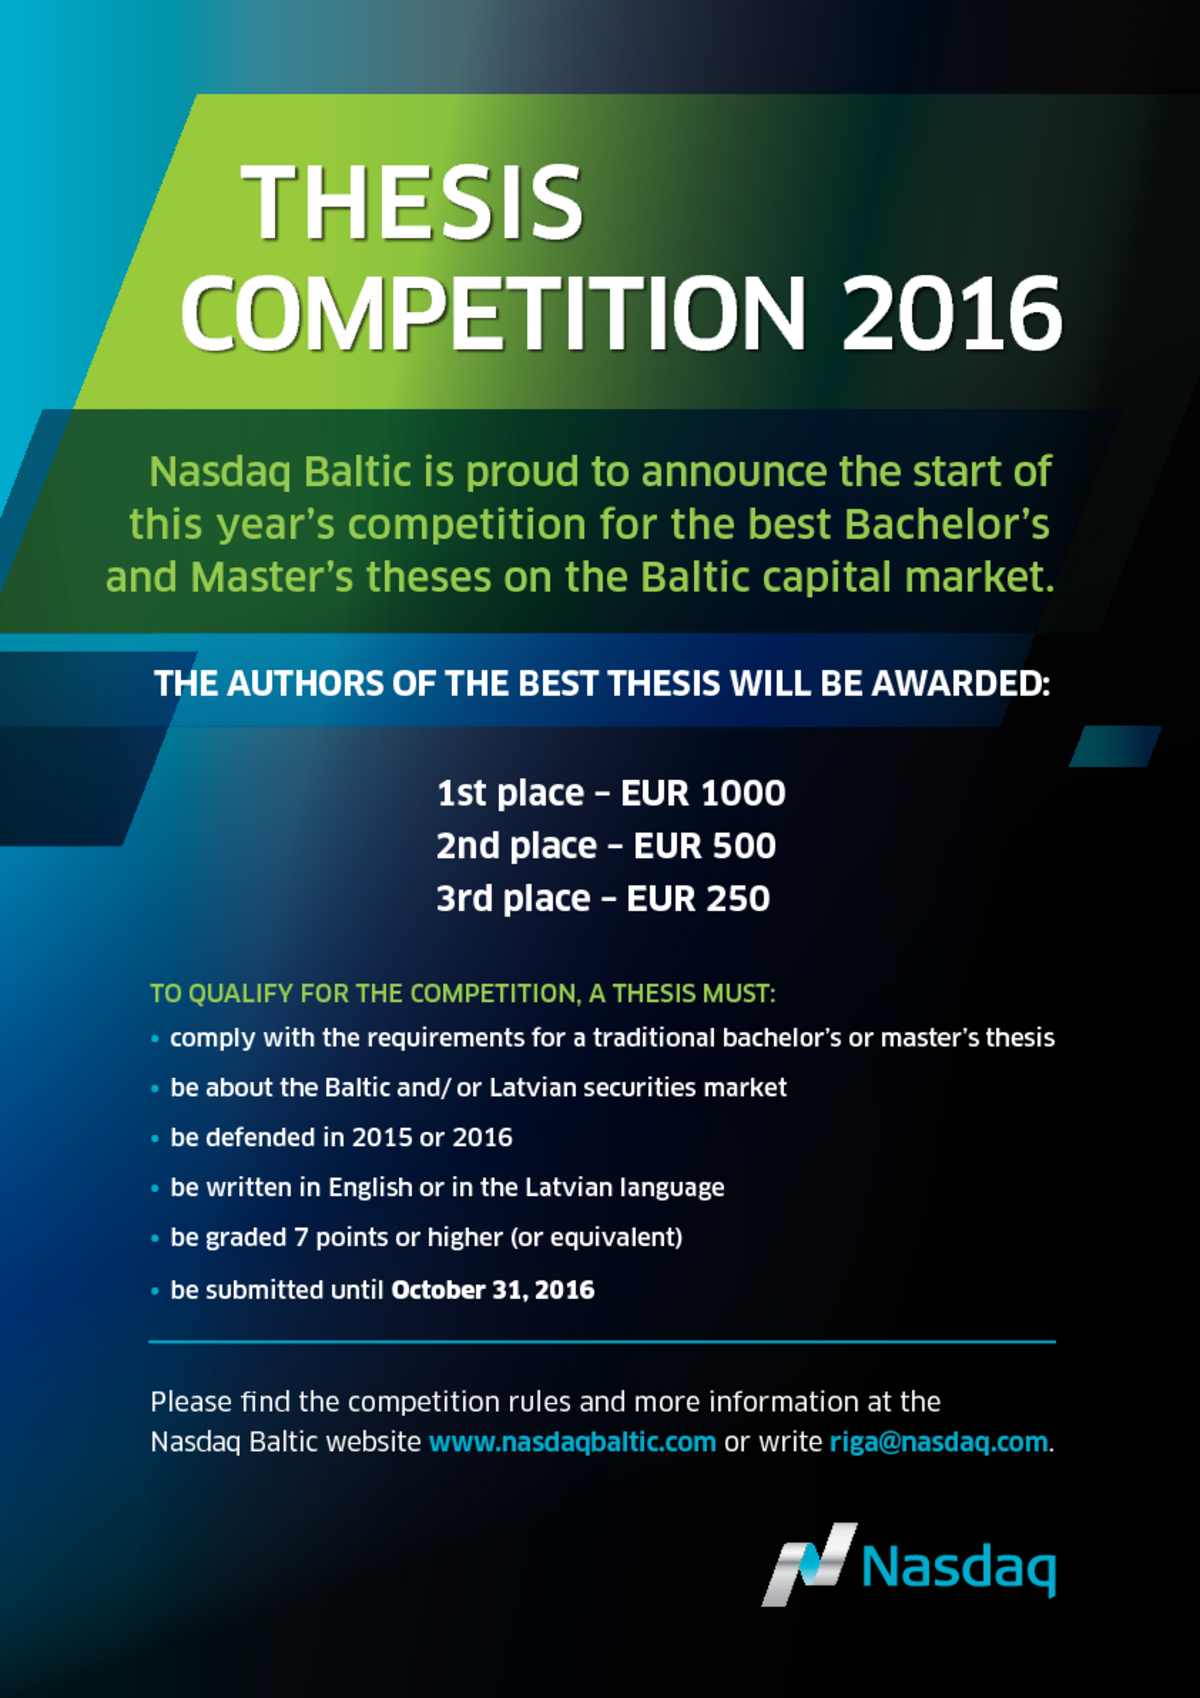 nasdaq baltic thesis competition